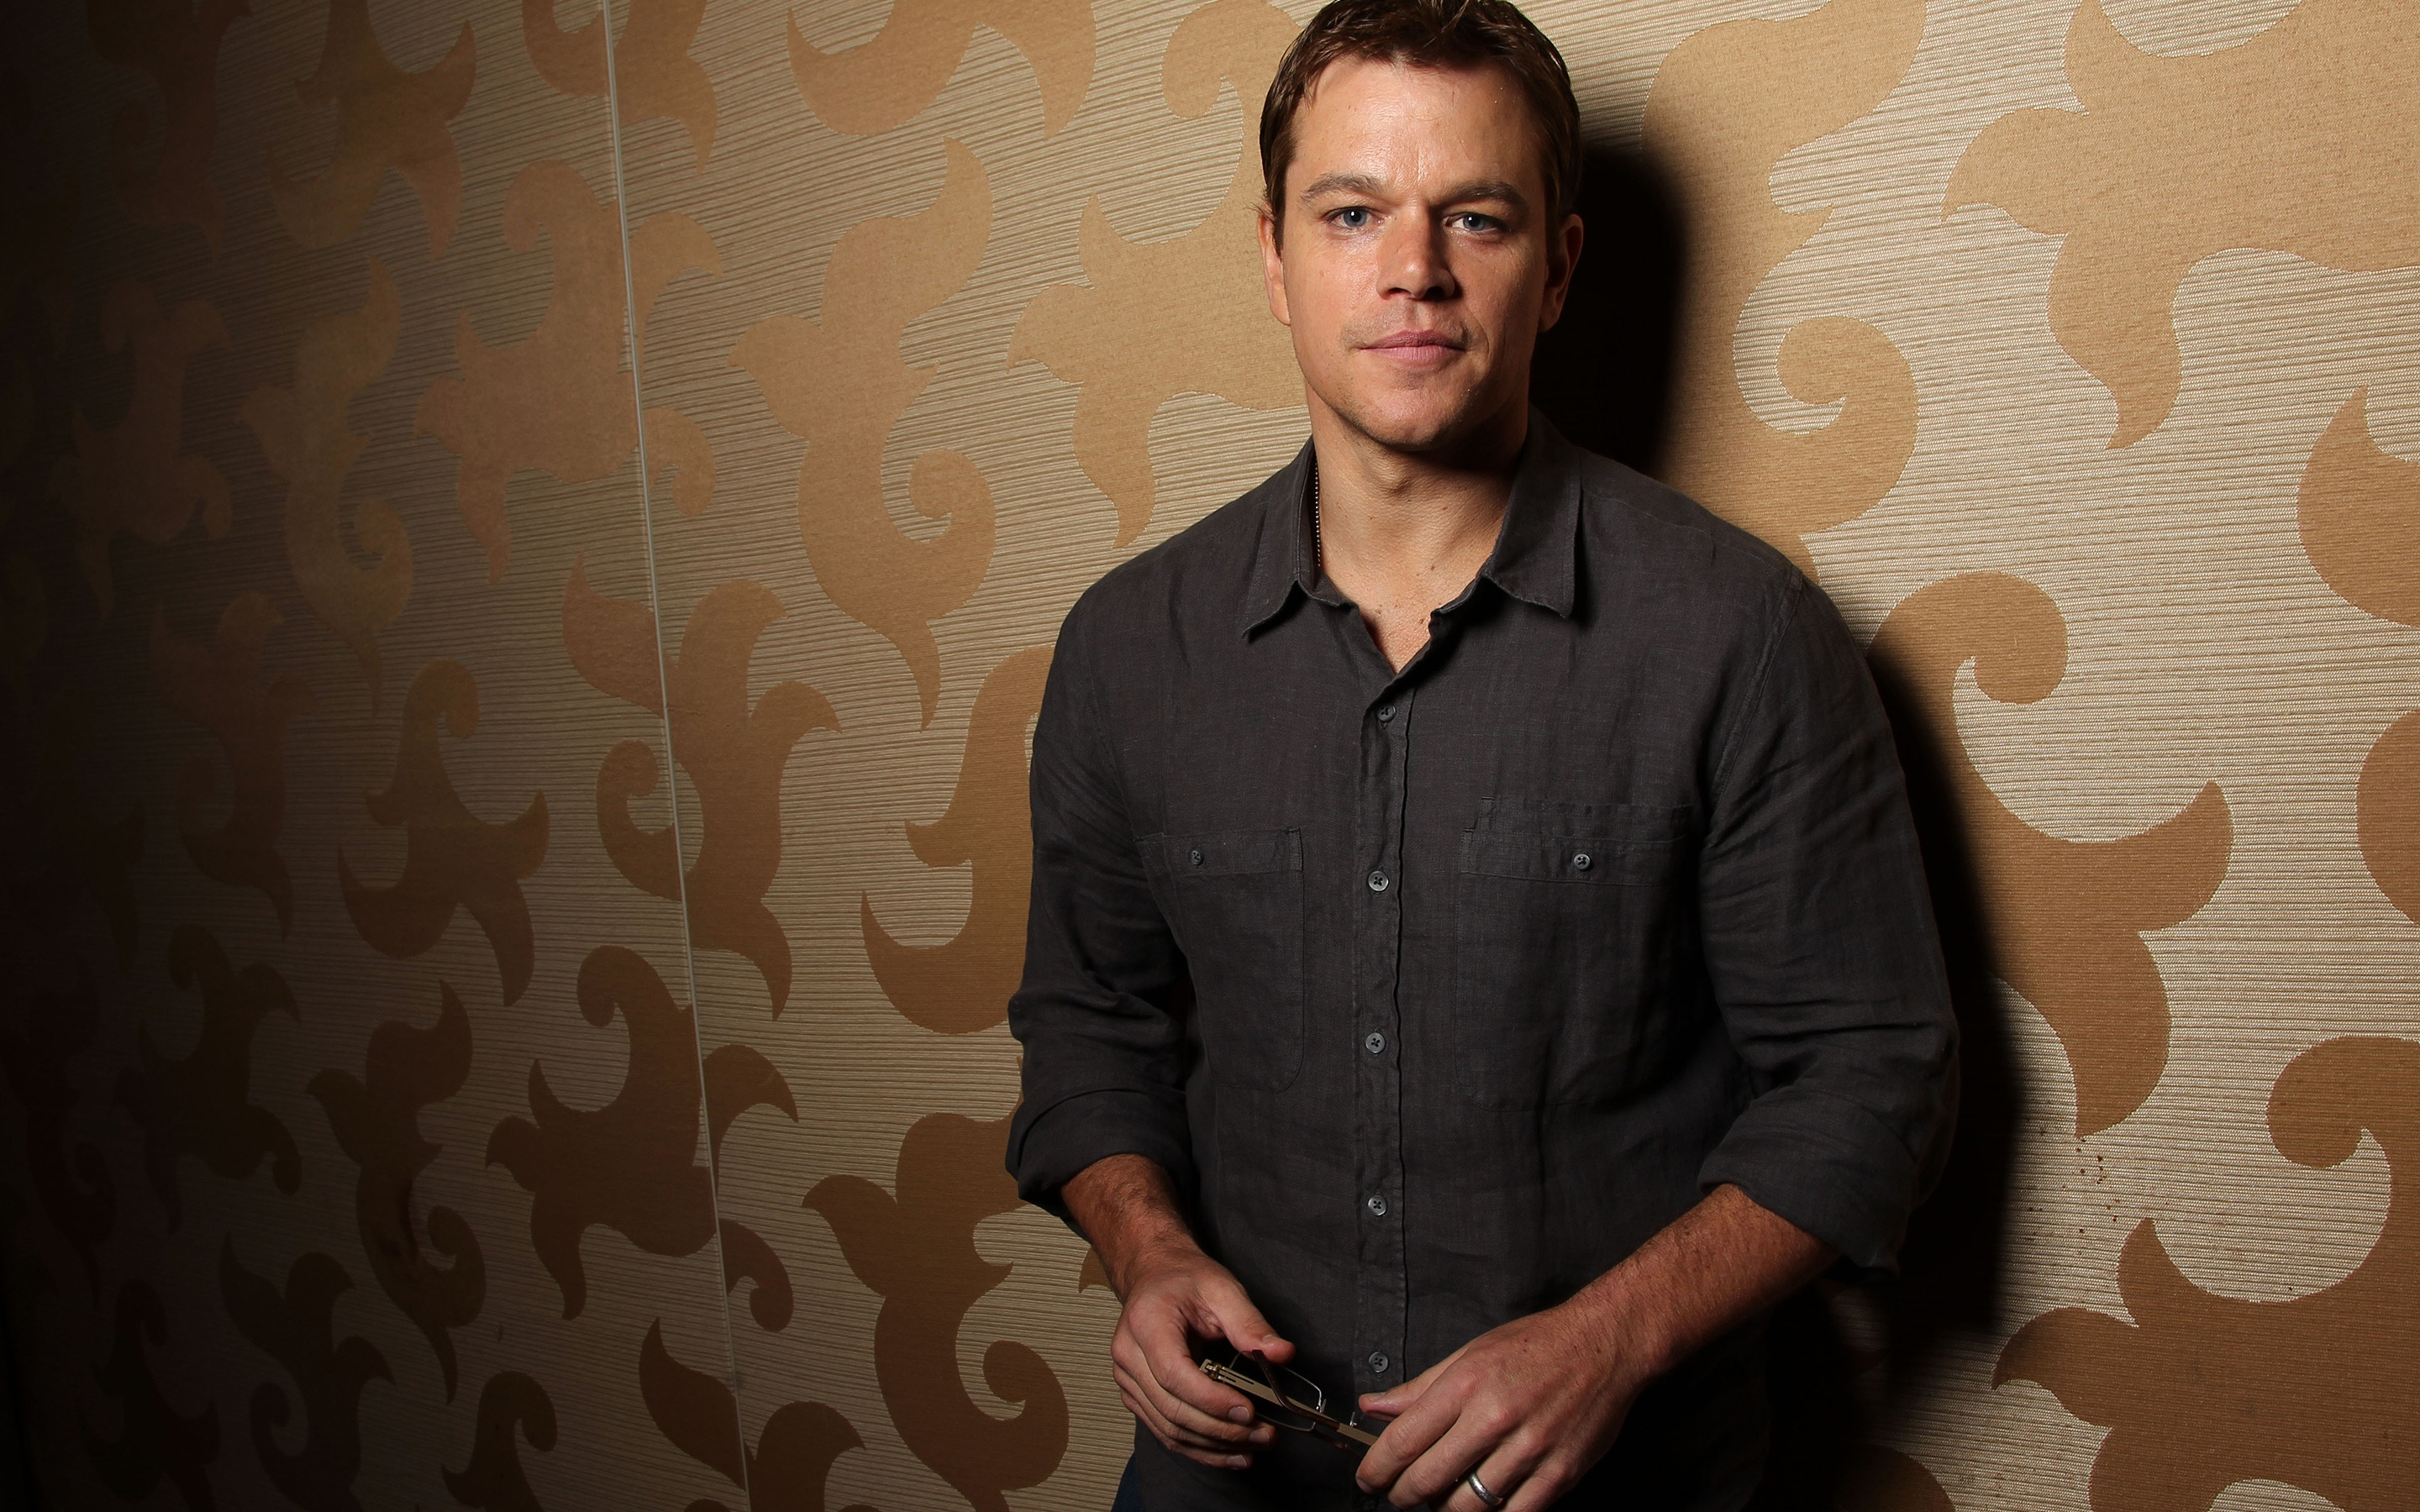 Matt Damon Actor for 2880 x 1800 Retina Display resolution